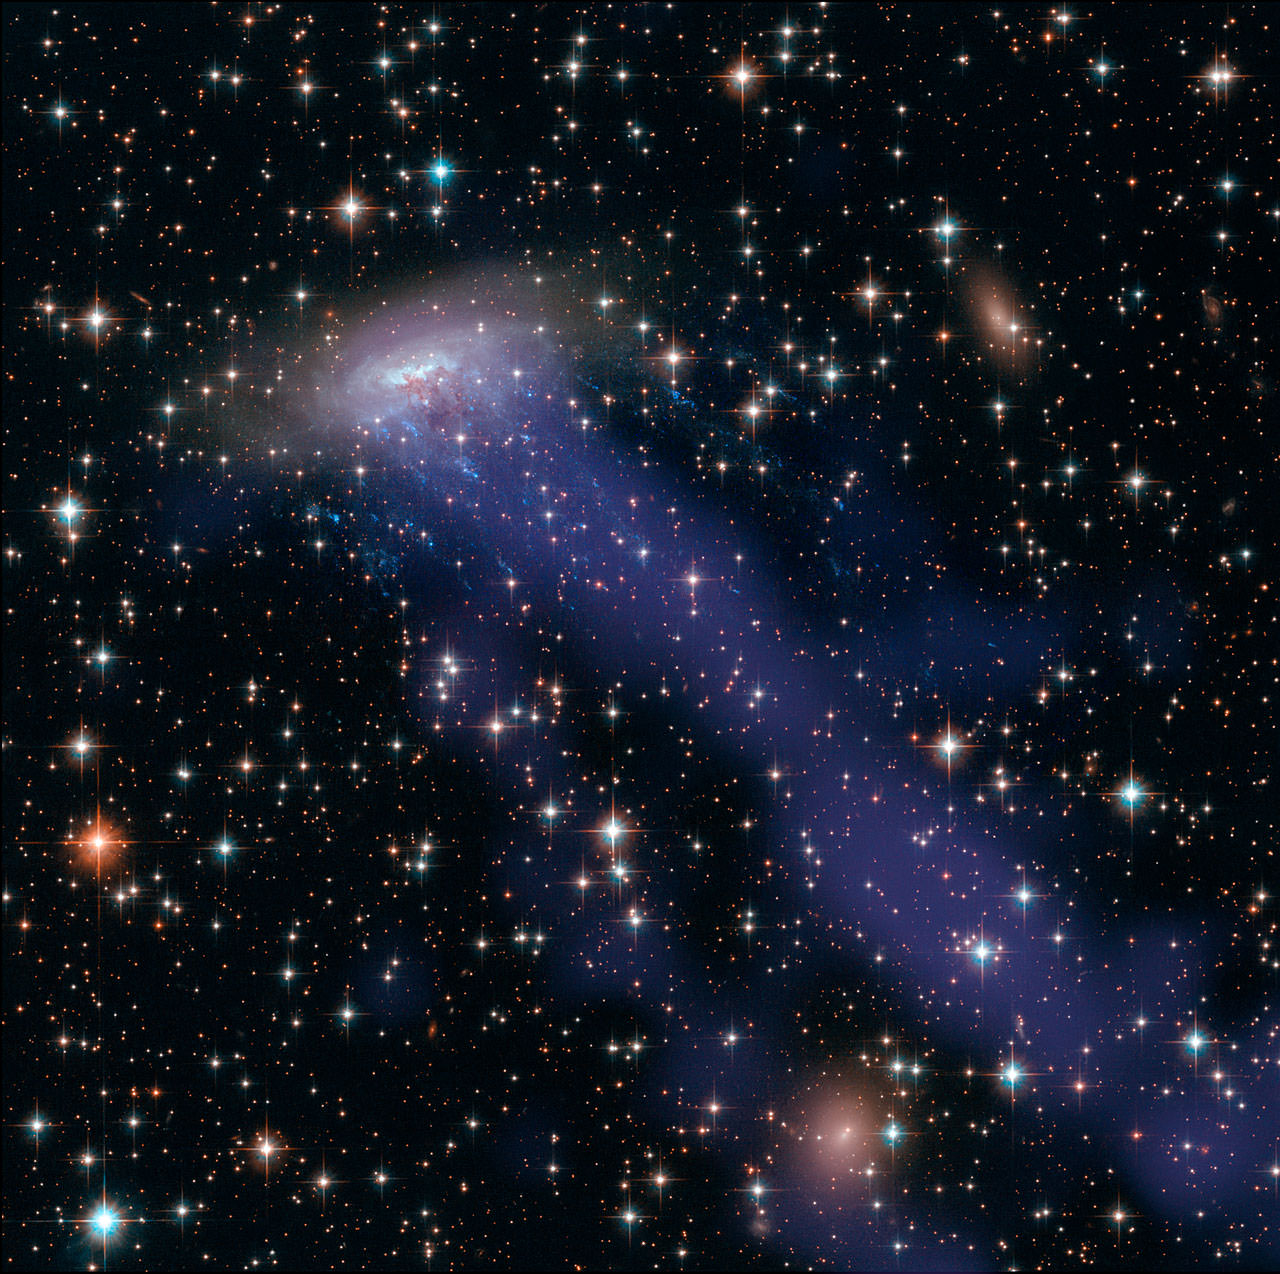 A gas stream from galaxy ESO 137-001 shines brightly in X-rays captured by the Chandra X-Ray Observatory. The galaxy is captured in other wavelengths by the Hubble Space Telescope. Credit: NASA, ESA, CXC